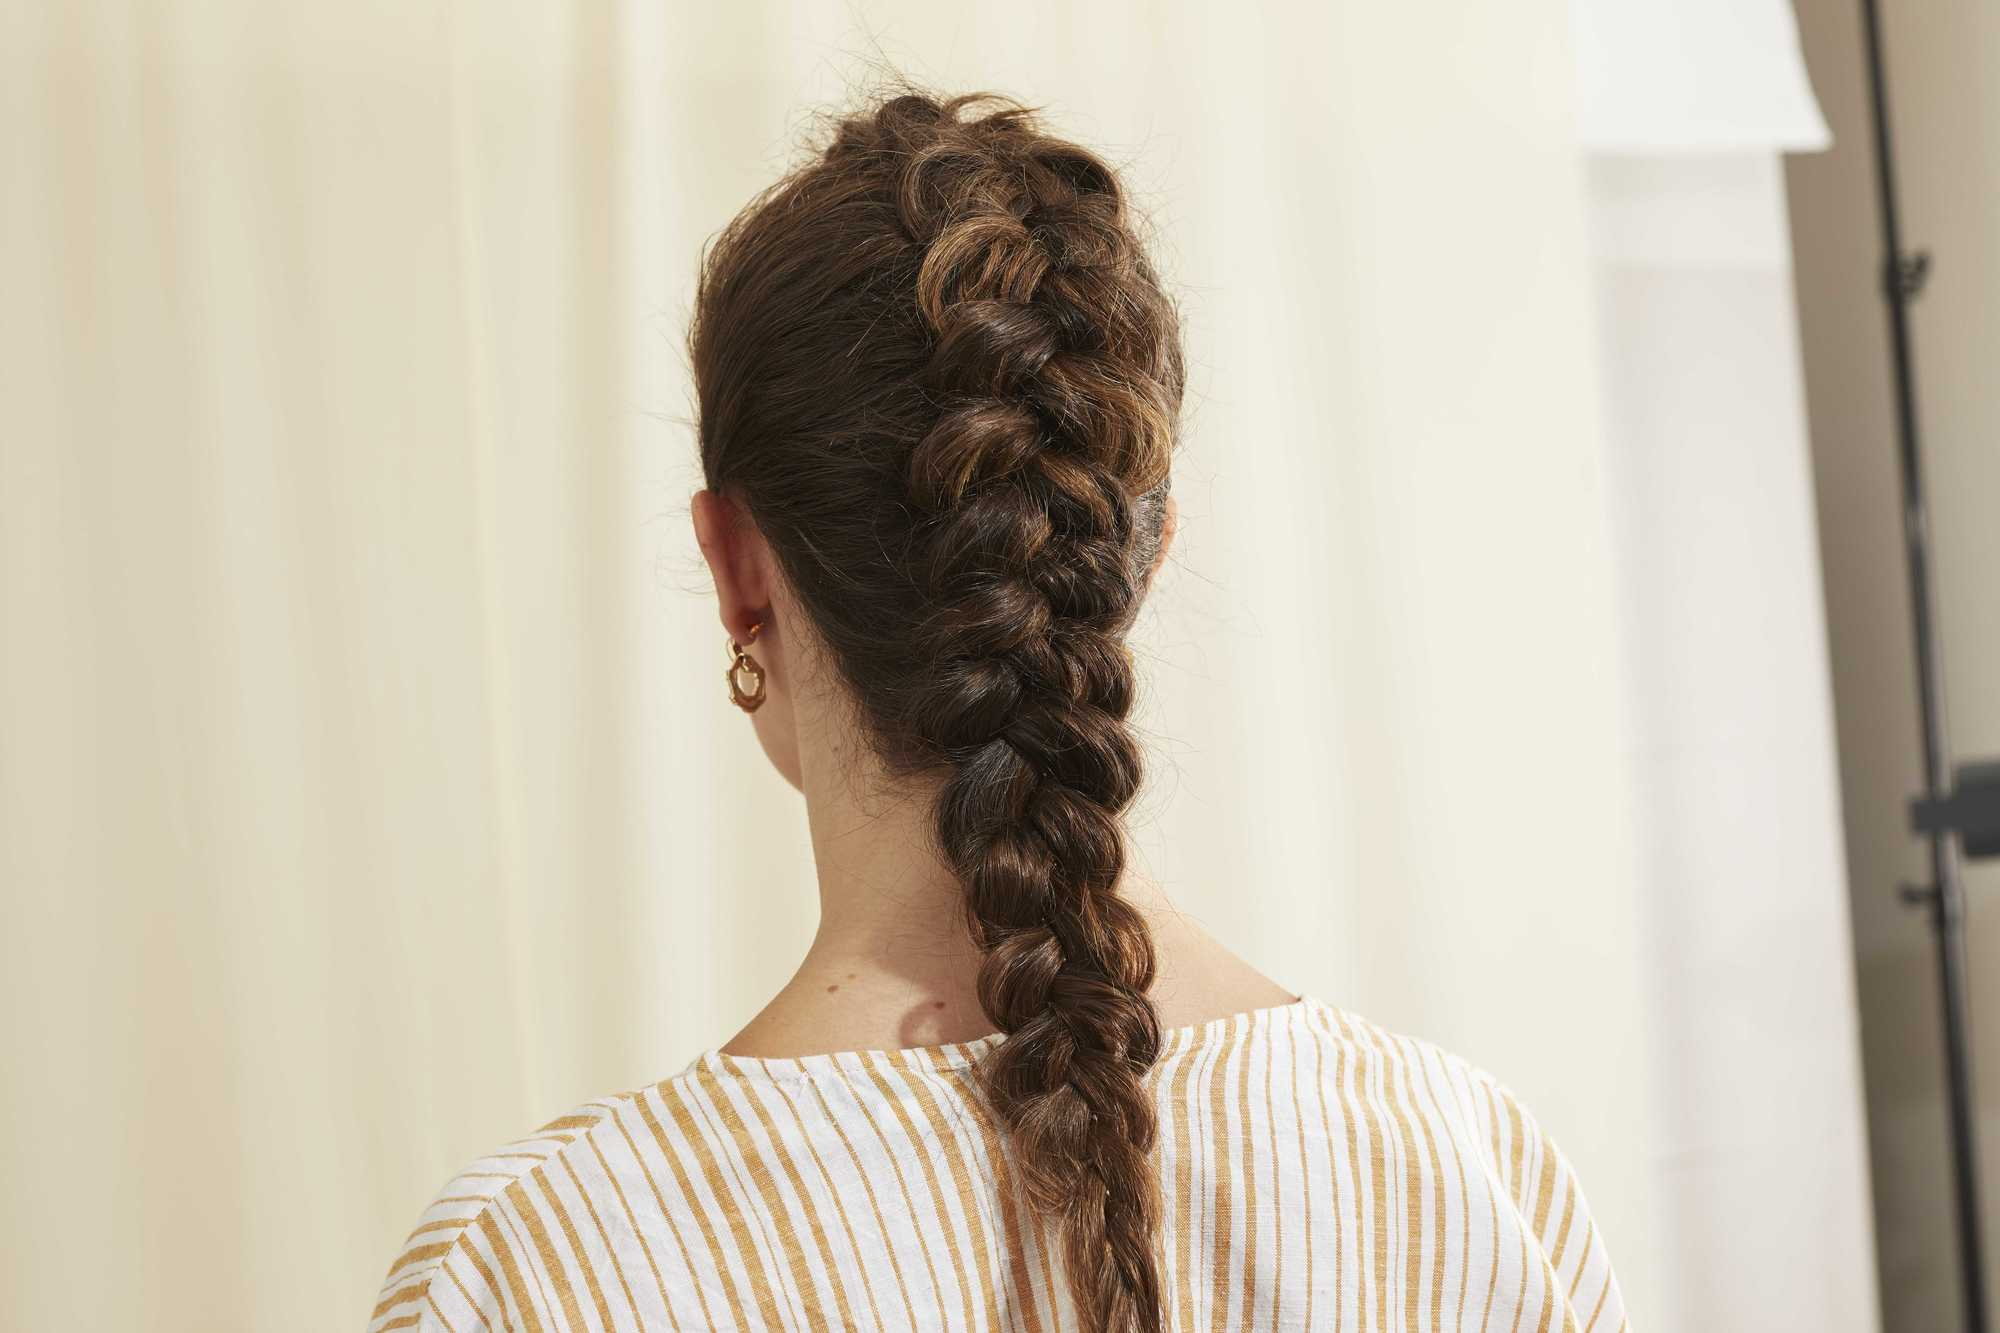 Woman with long brunette hair in a Dutch braid